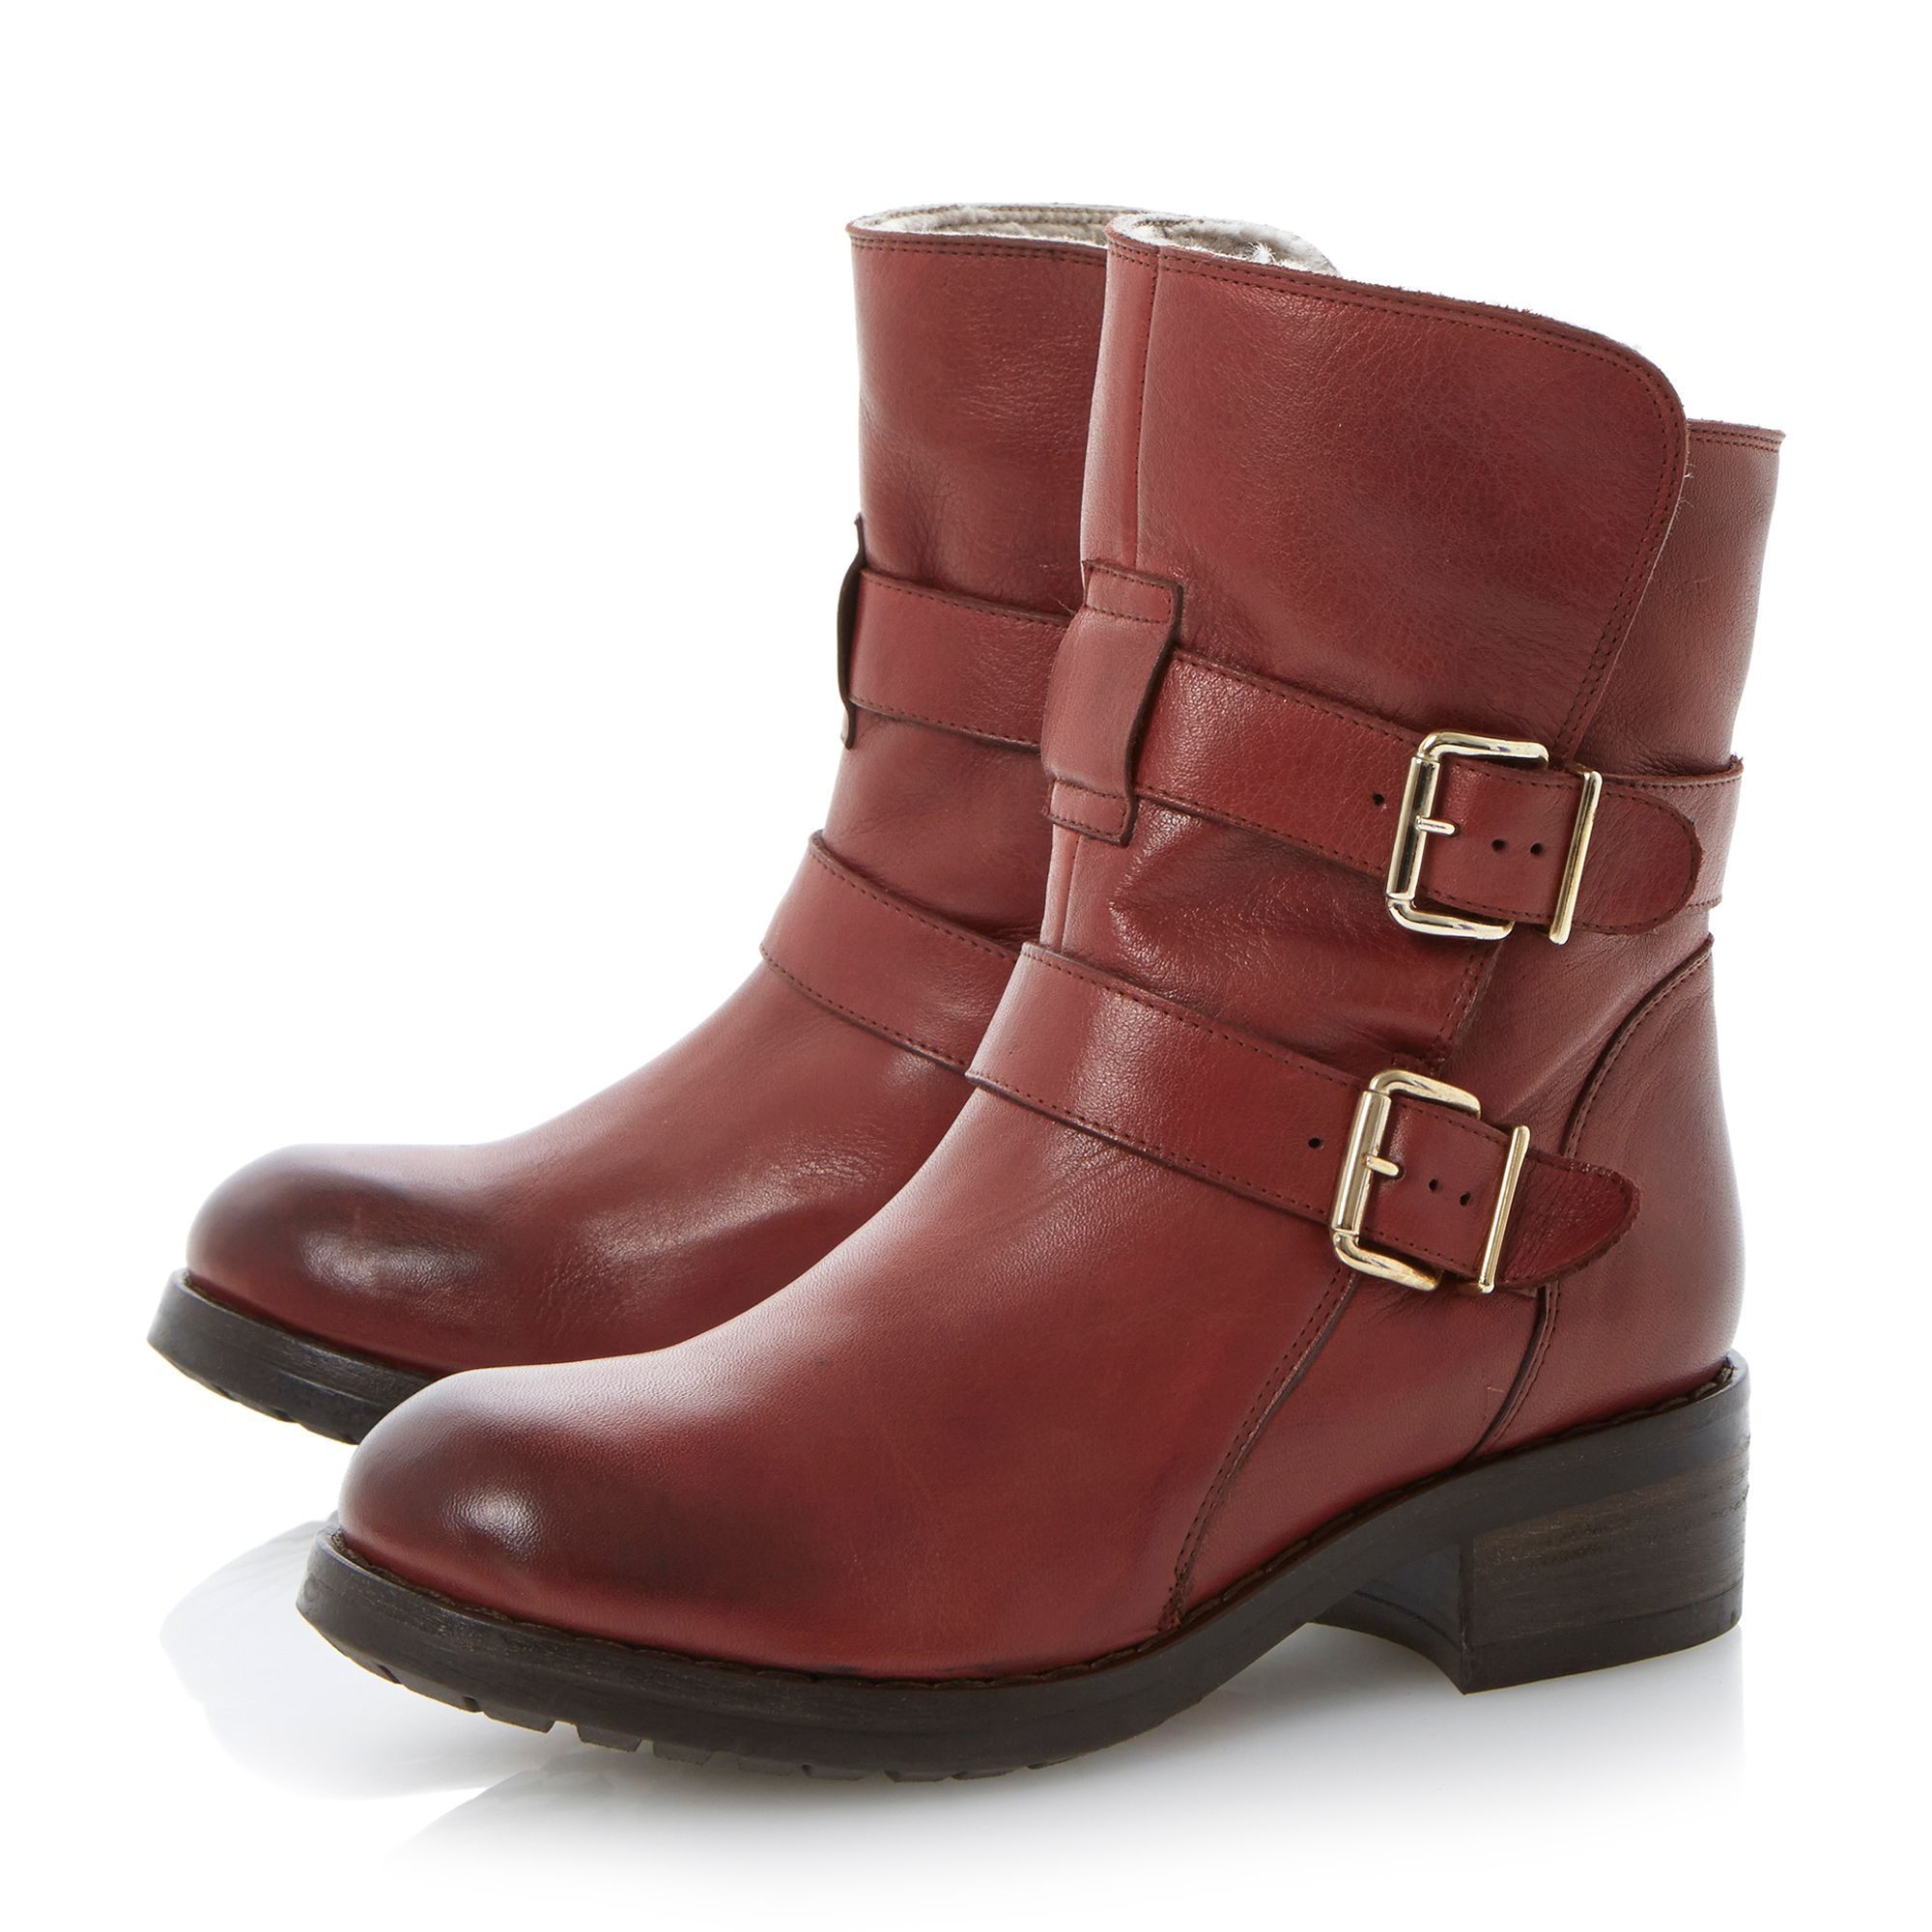 Peggy double buckle leather calf boots